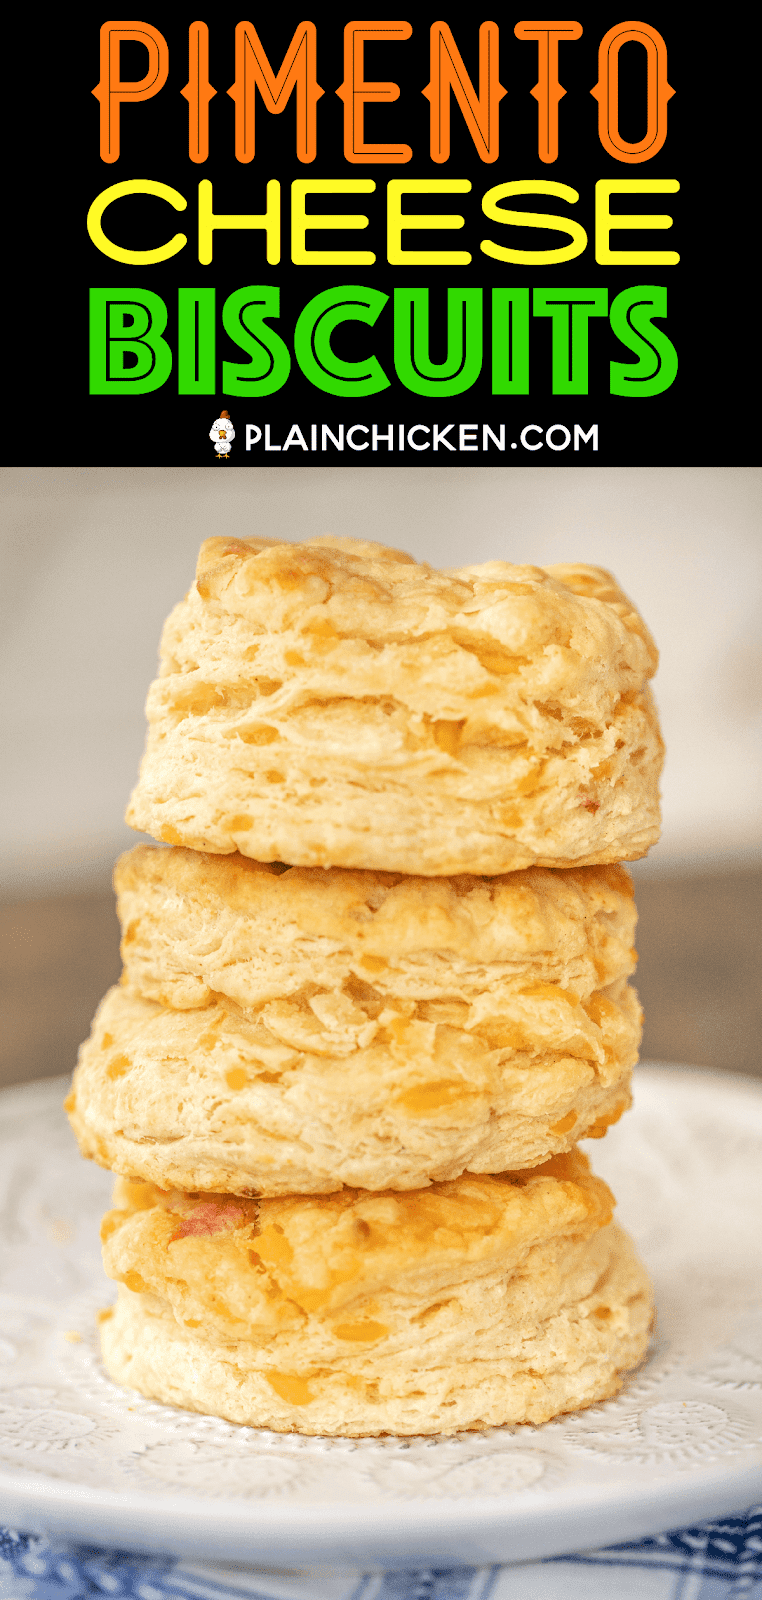 three biscuits stacked on top of each other on a plate